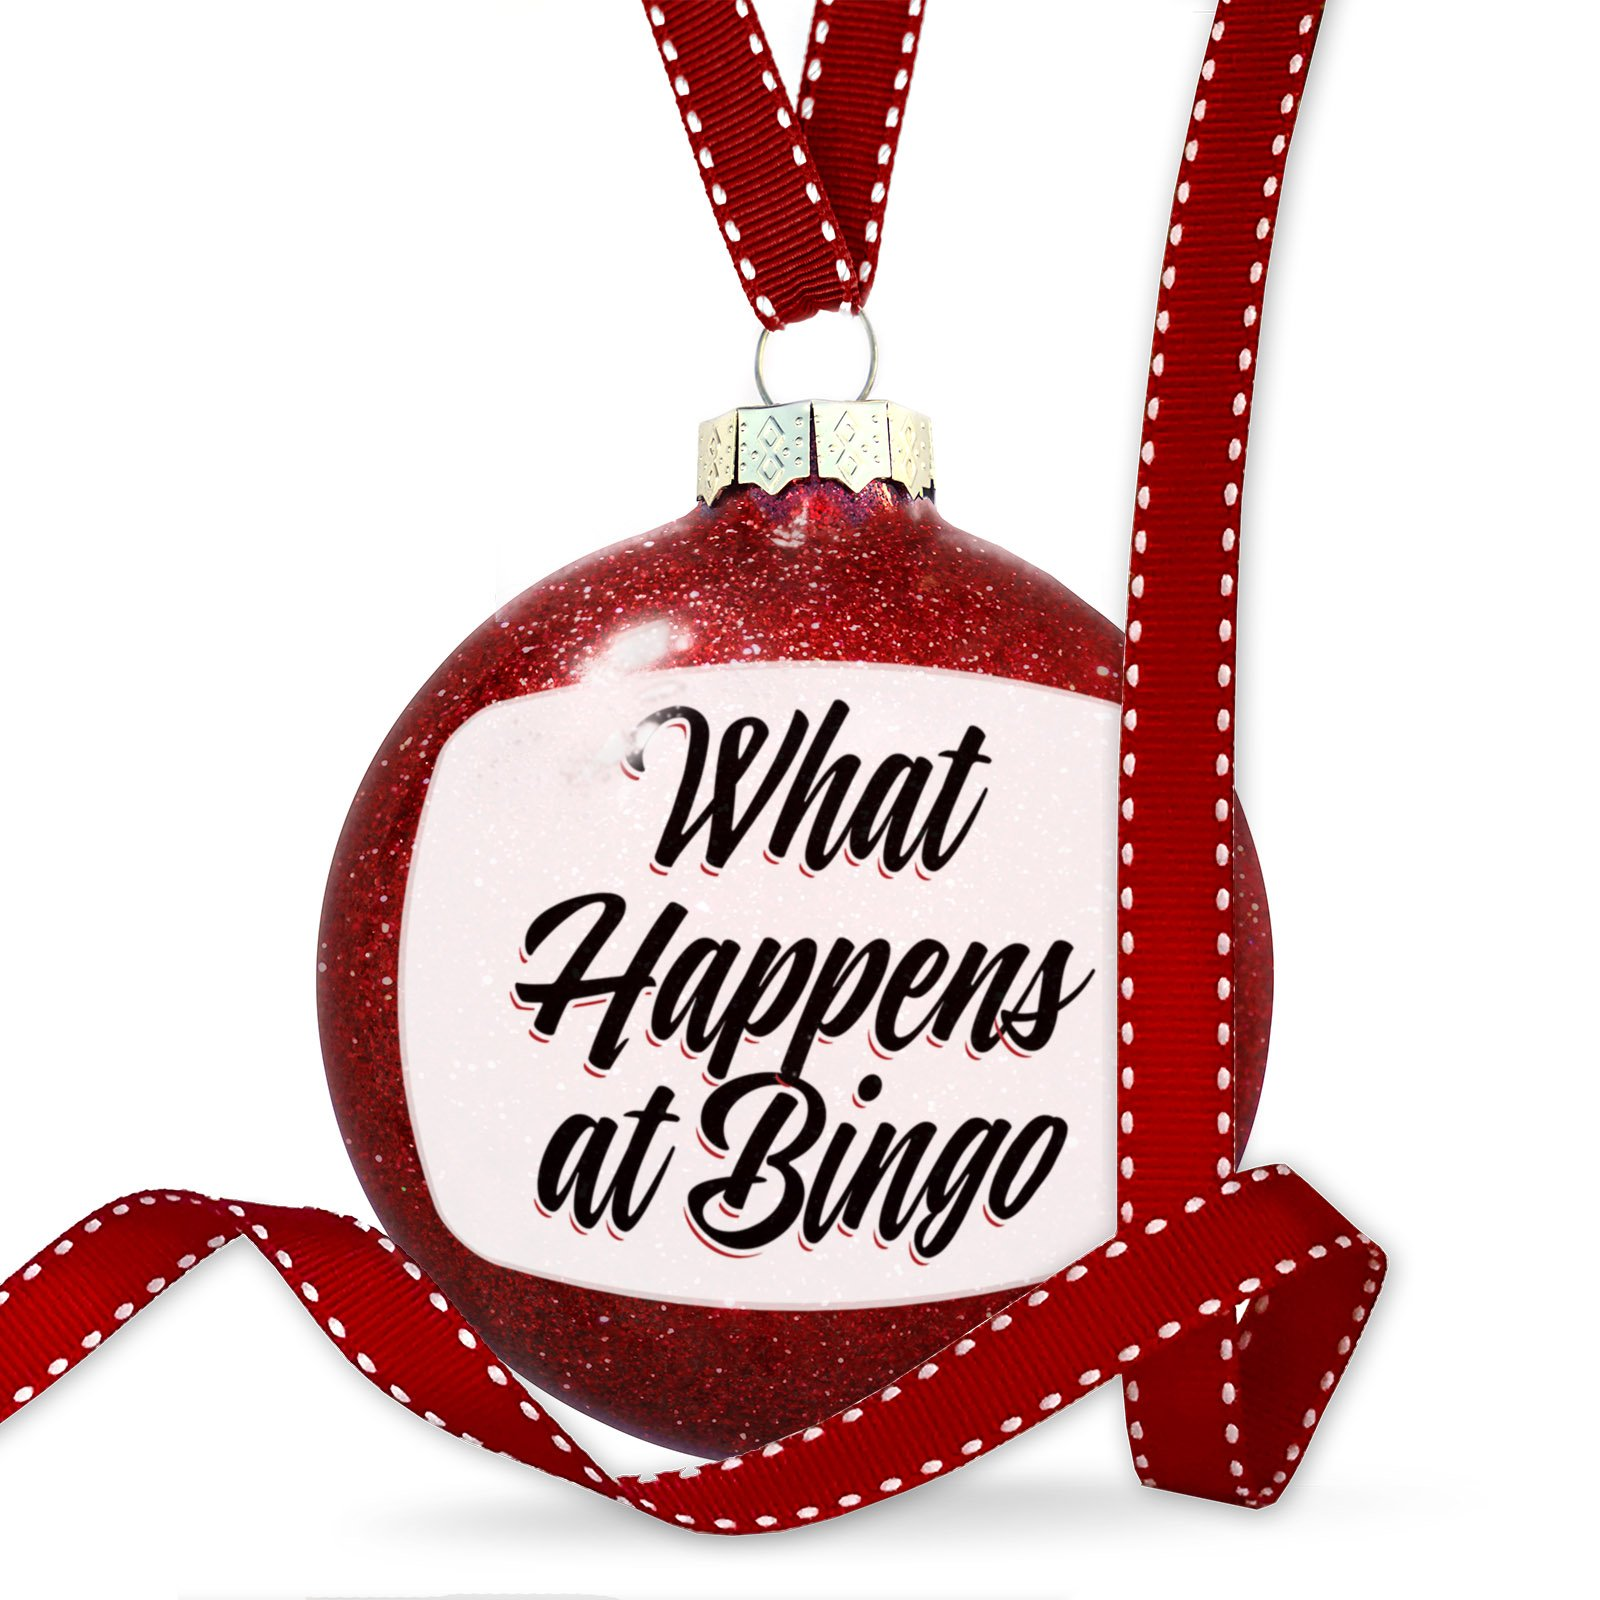 Christmas Decoration Vintage Lettering What Happens at Bingo Ornament by NEONBLOND